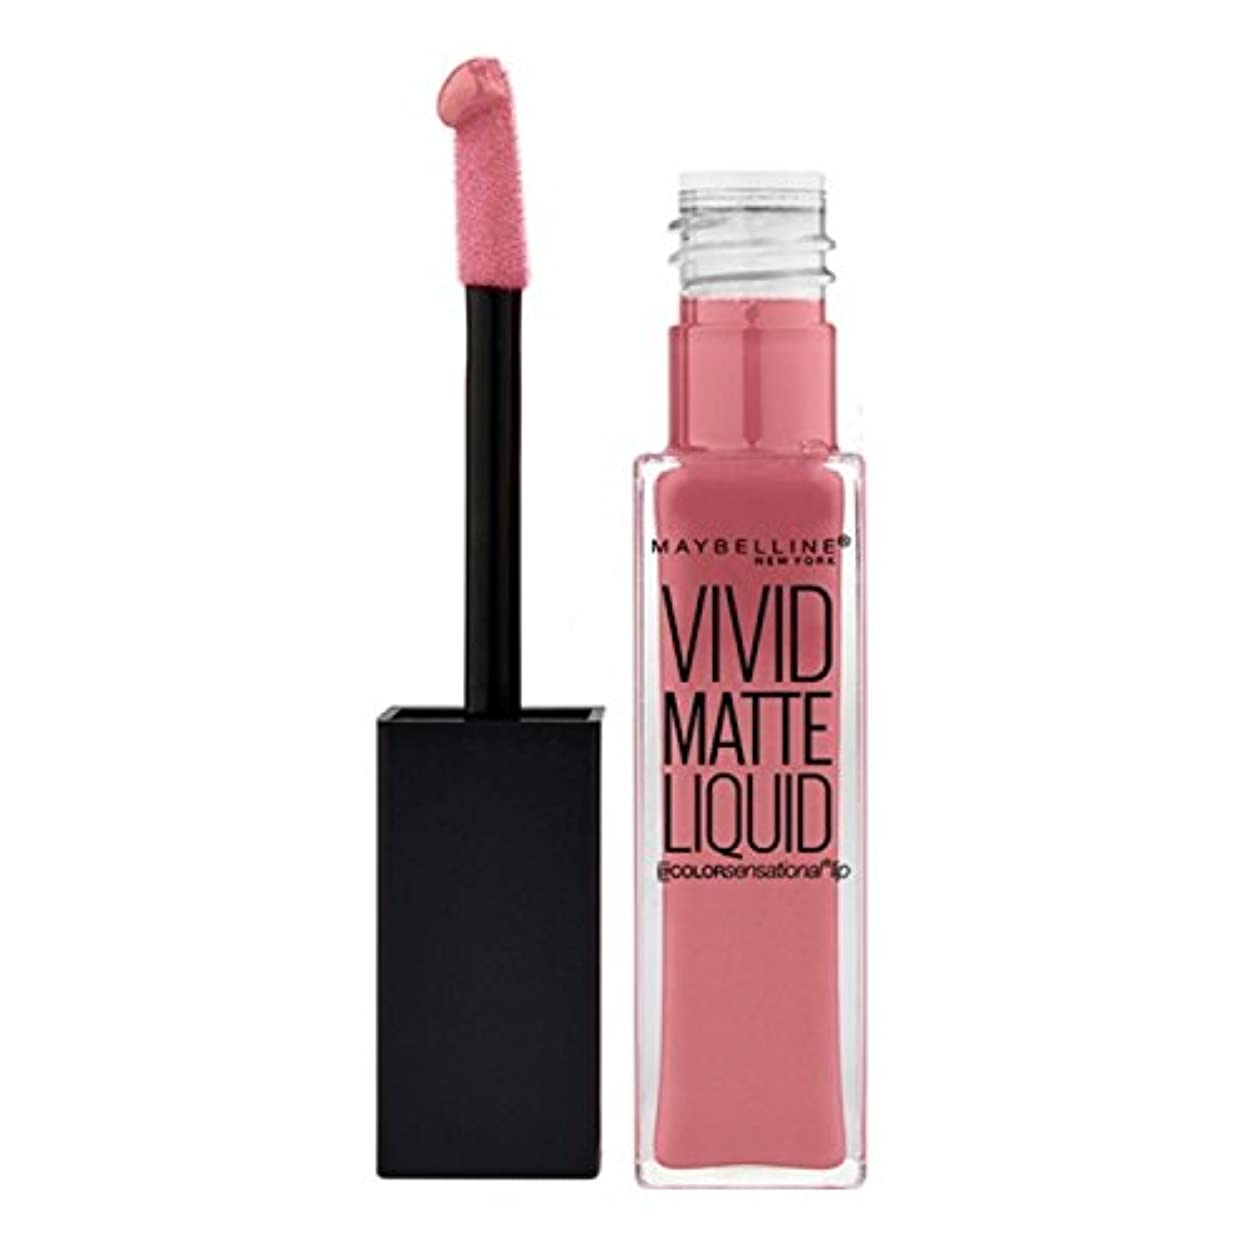 シートこれら適用済み(3 Pack) MAYBELLINE Vivid Matte Liquid - Nude Flush (並行輸入品)